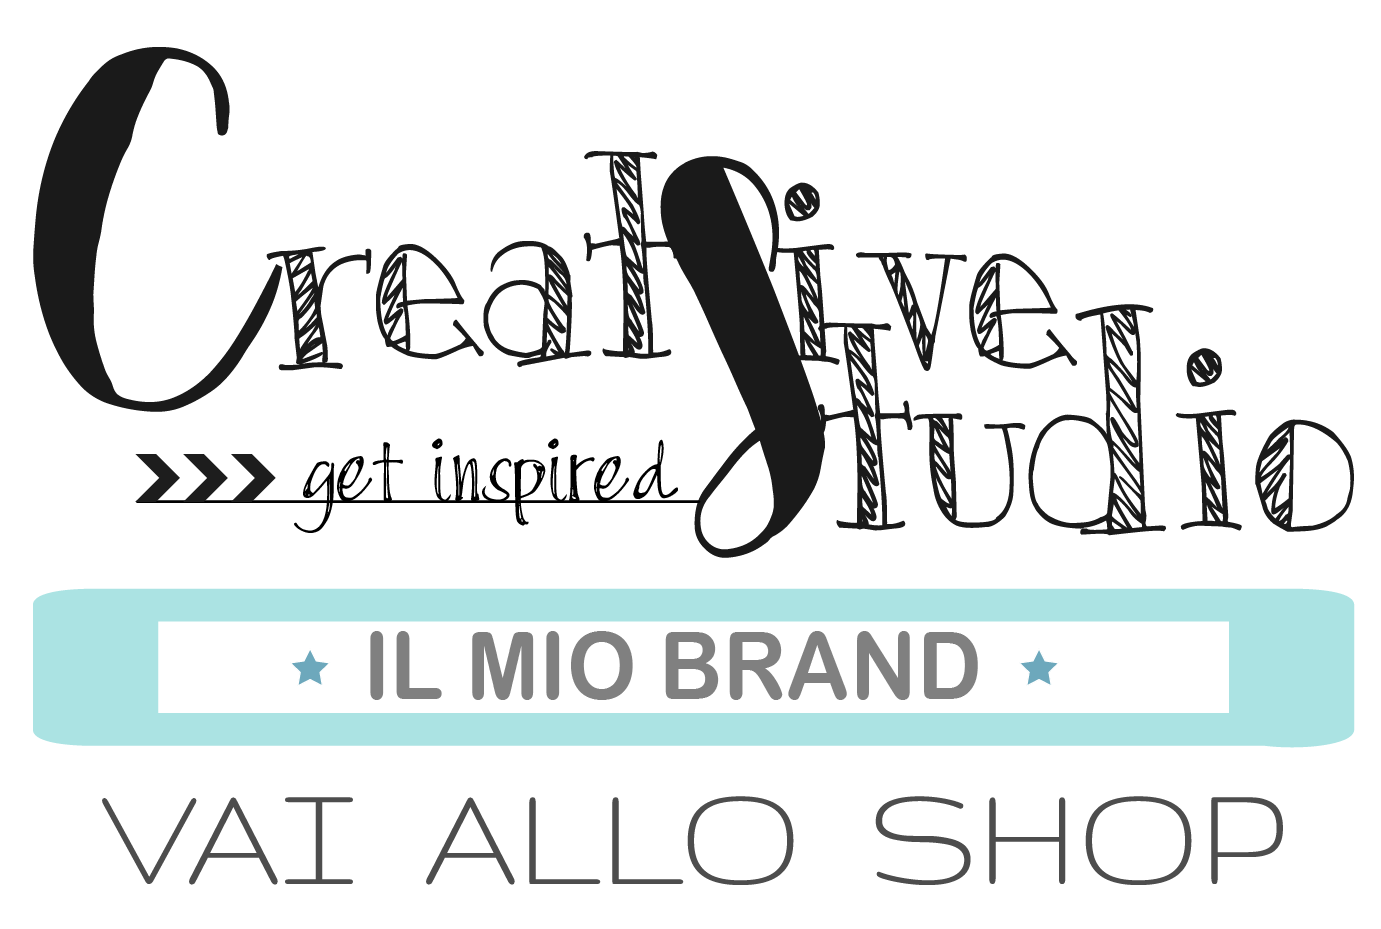 creative-studio-shop